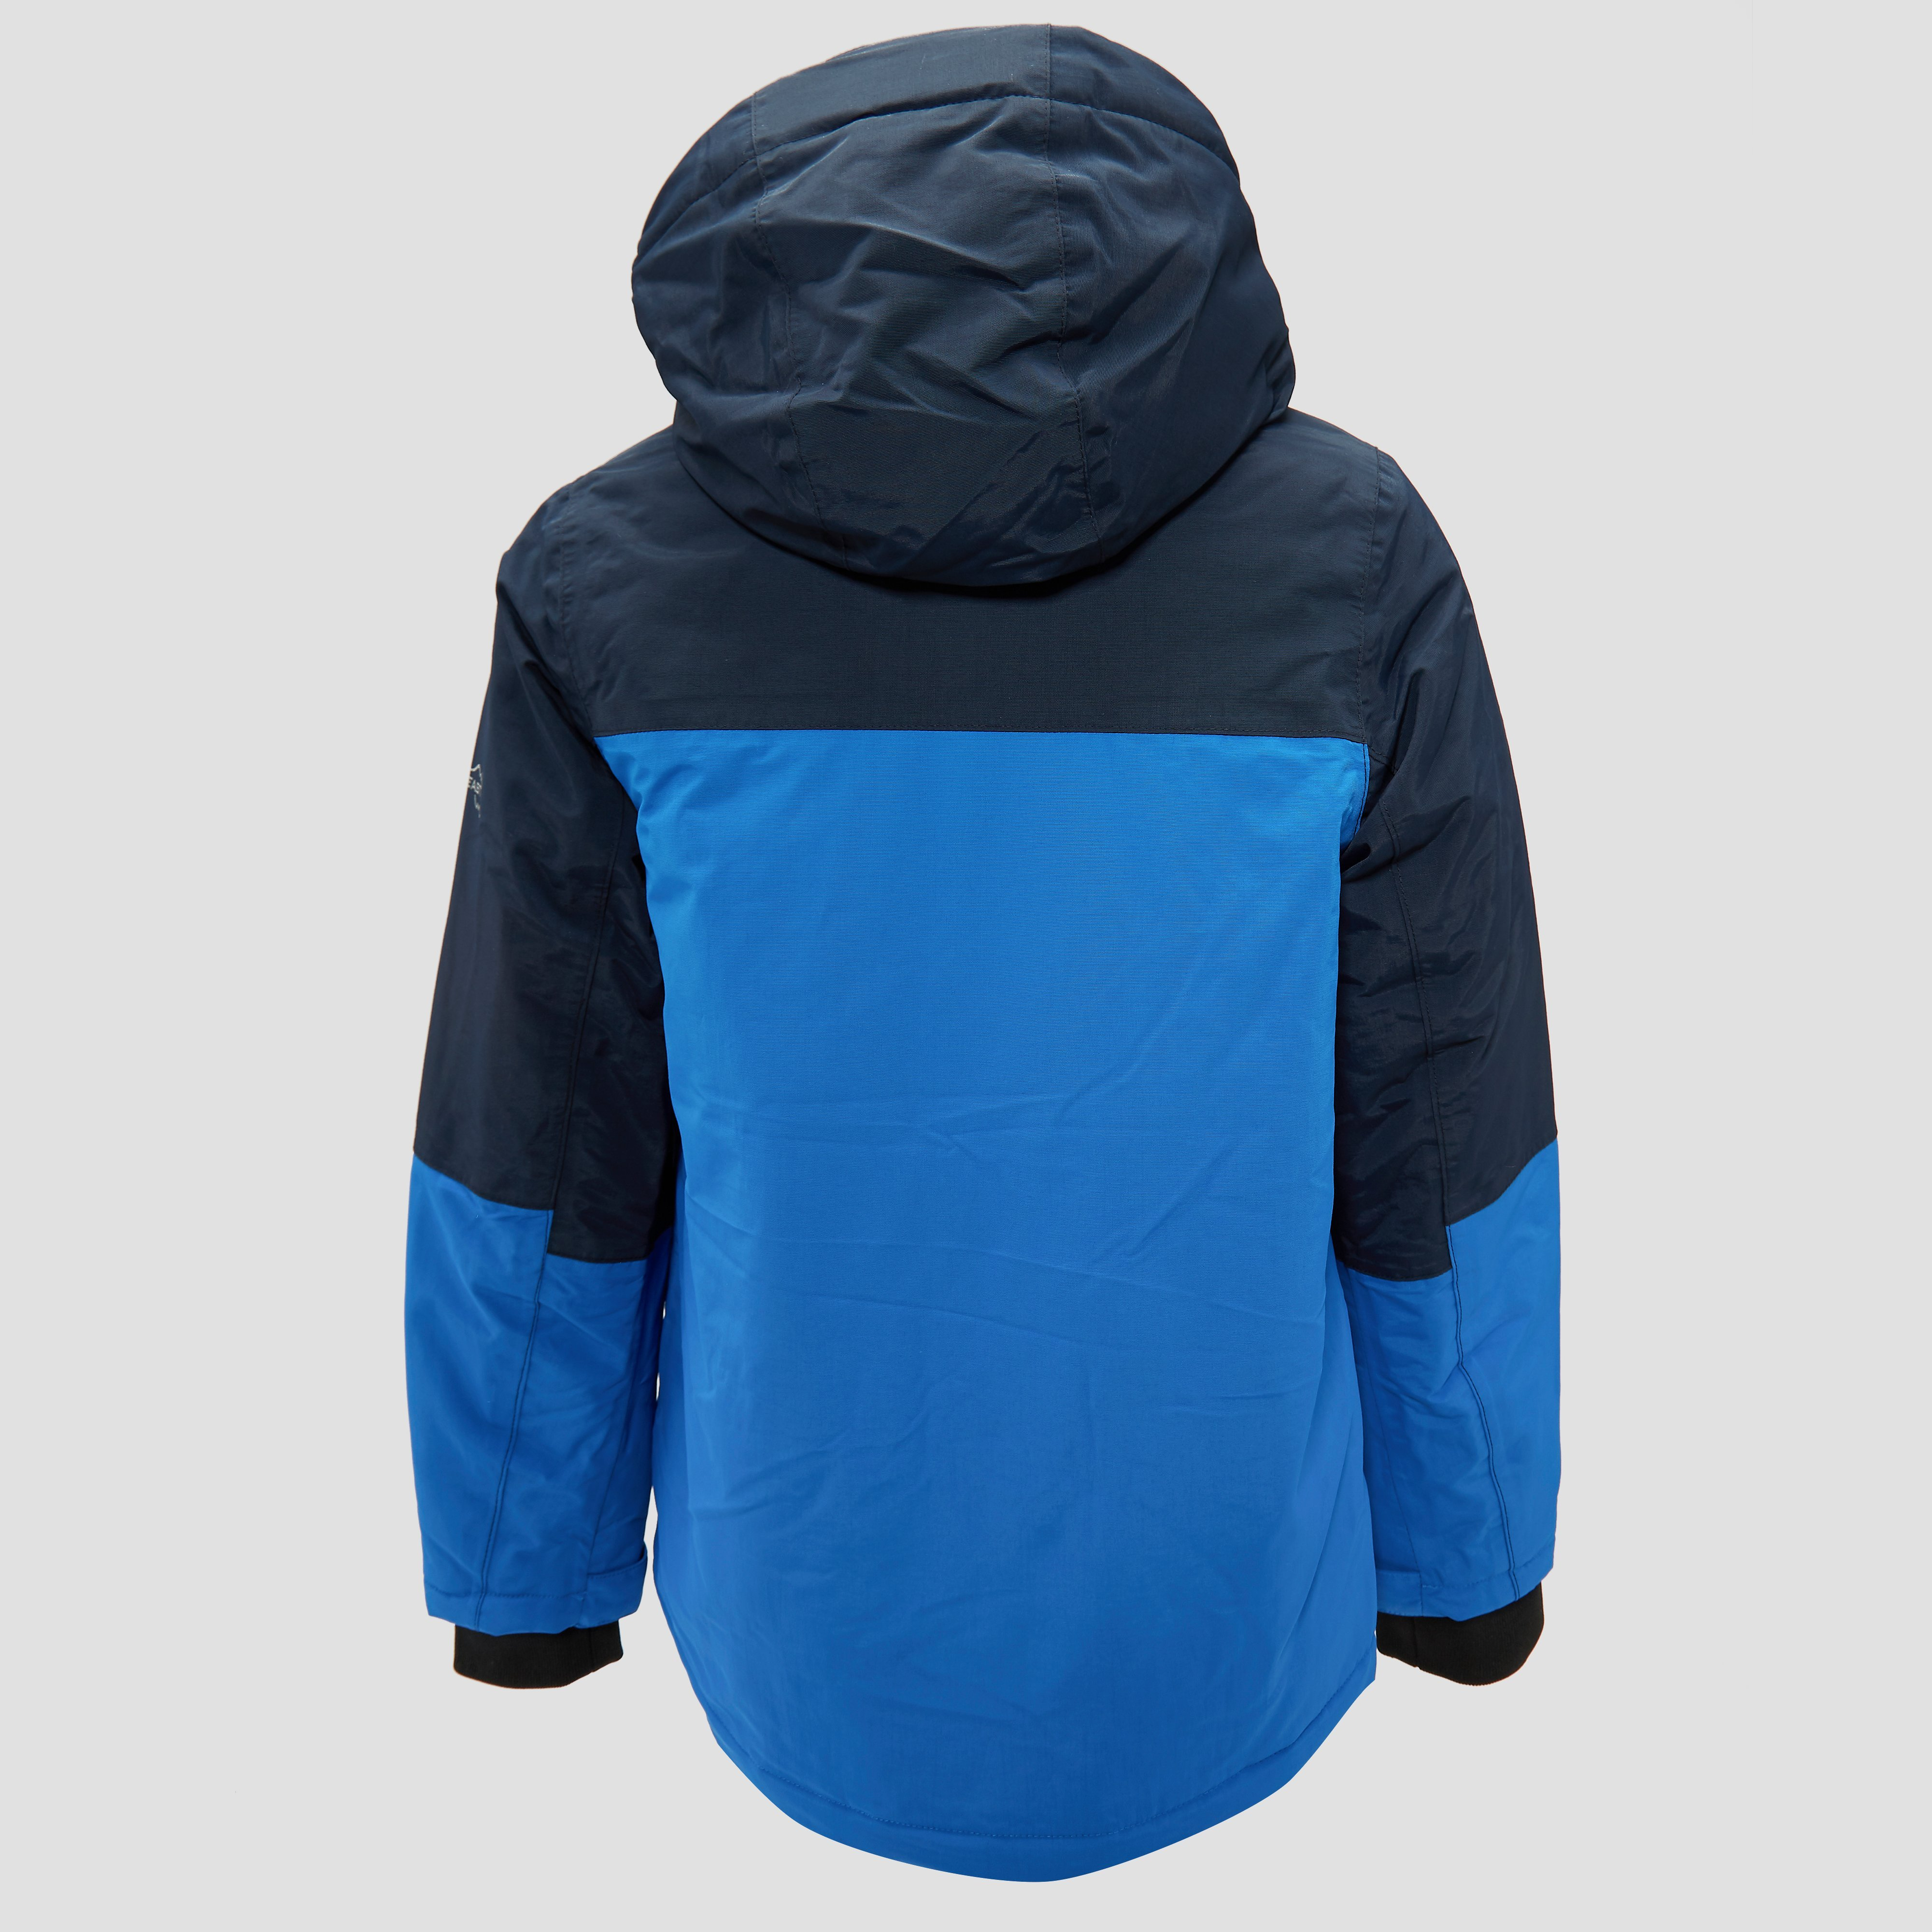 WILDEBEAST MINI NATIONAL OUTDOOR JAS BLAUW KINDEREN